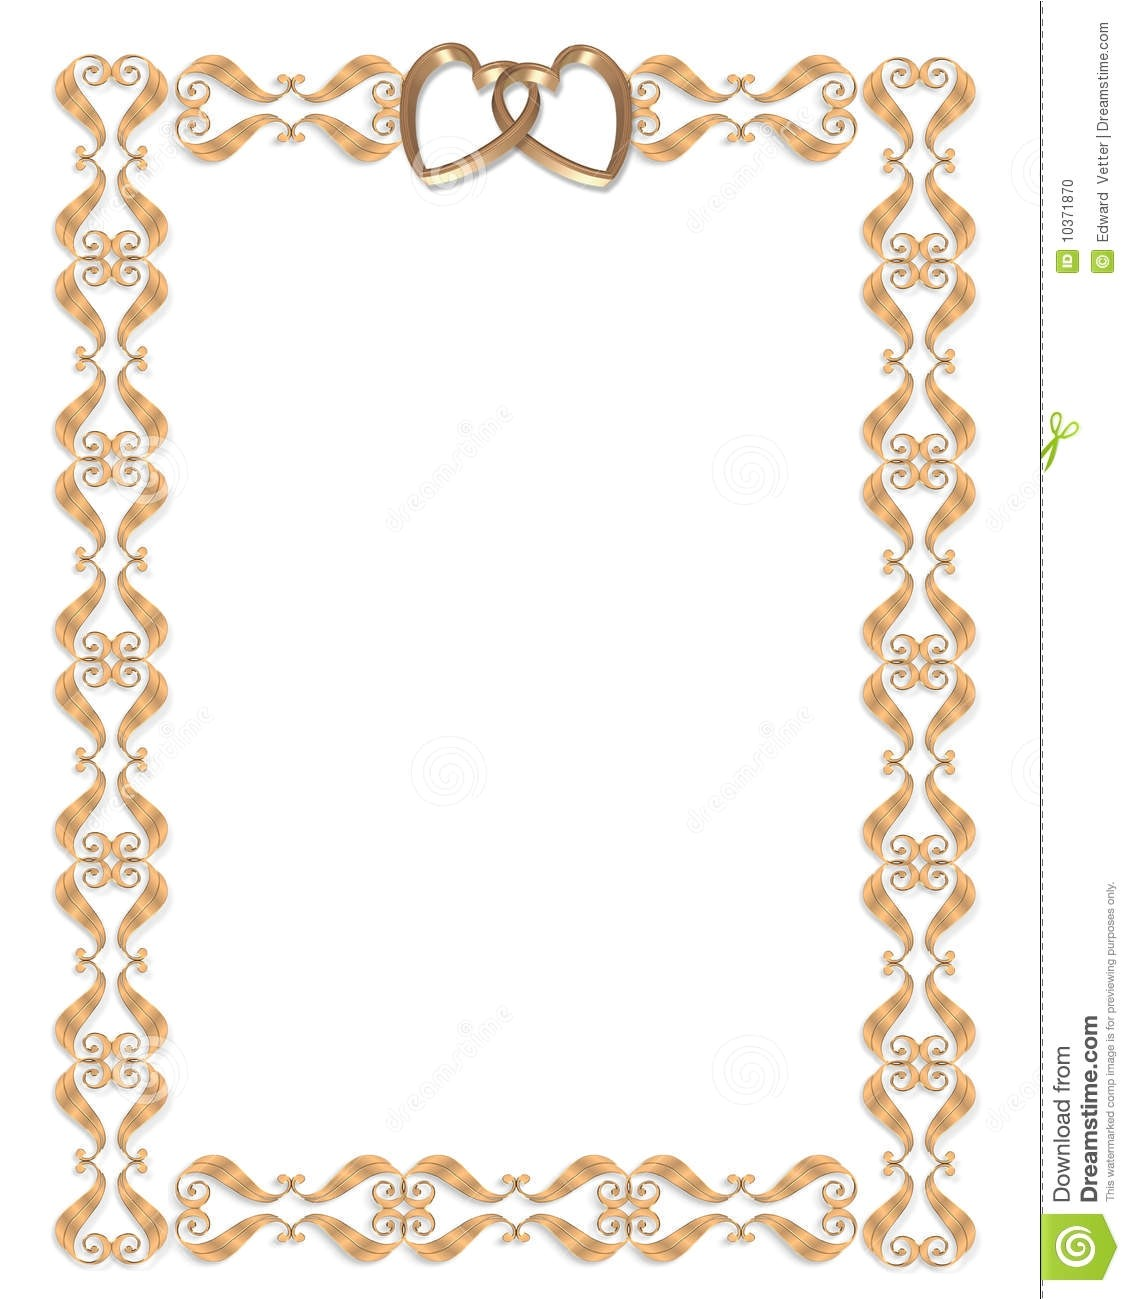 Borders and Frames for Wedding Invitation 6 Incredible Invitation Card Frames Borders Ebookzdb Com